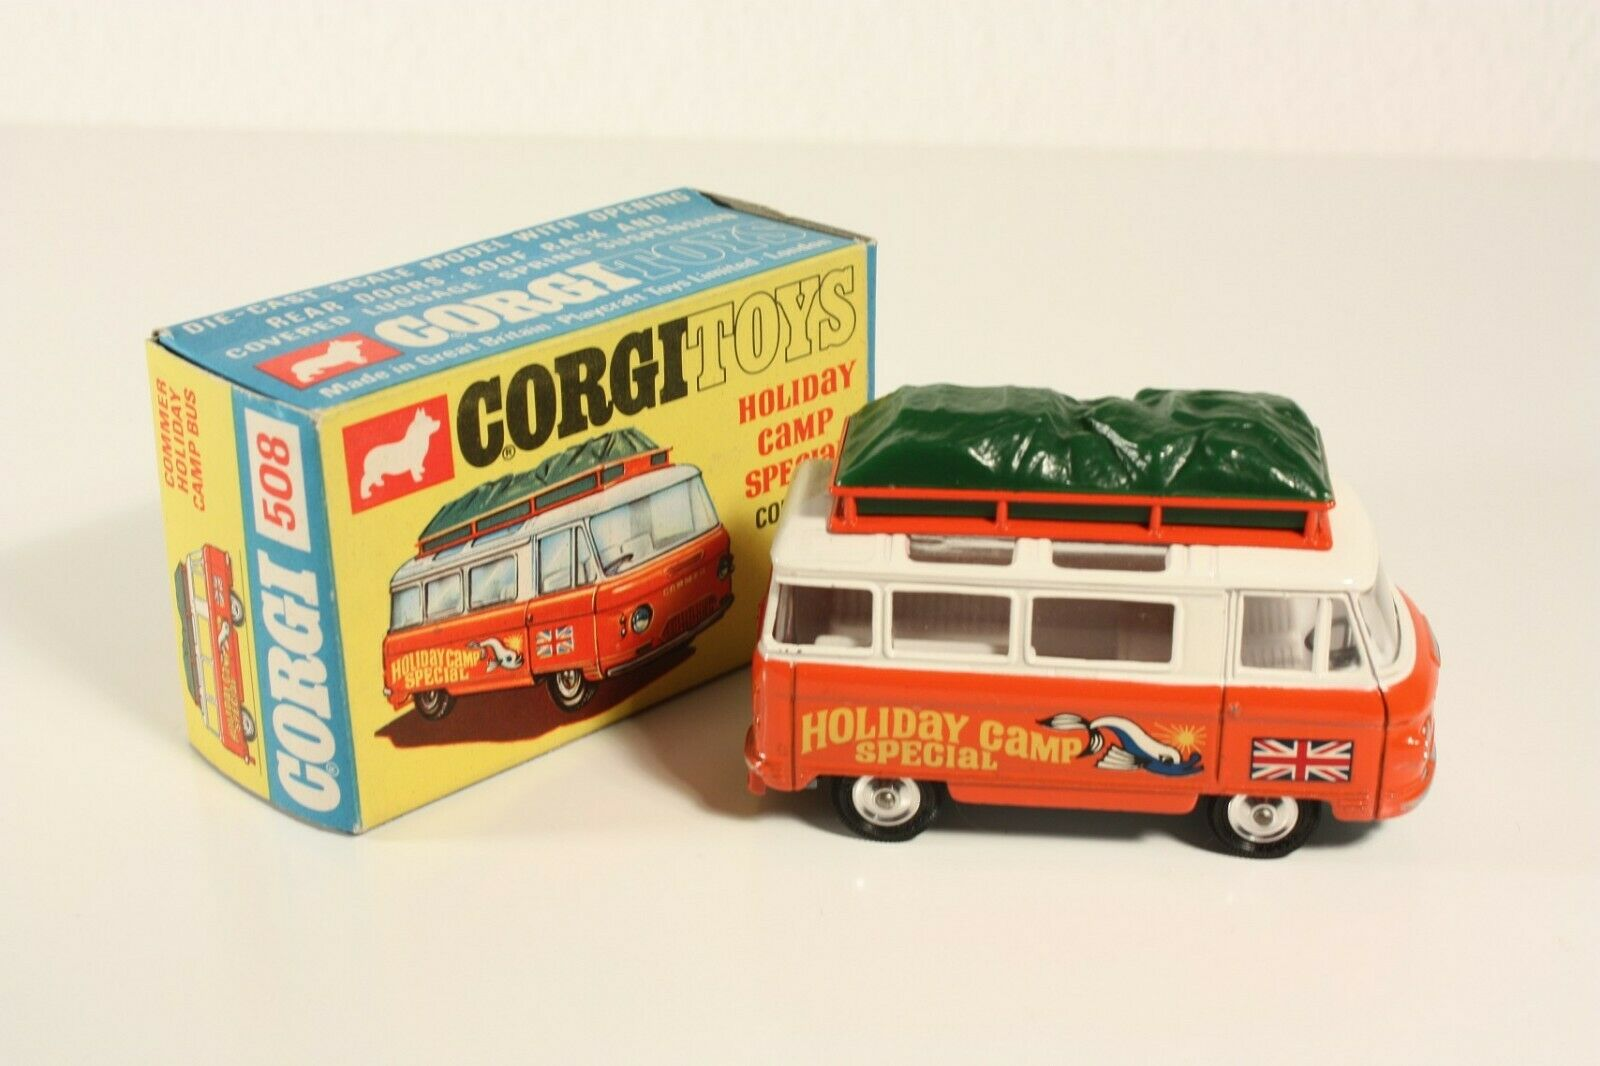 CORGI TOYS 508, commer Holiday Camp bus, Mint in Box  ab2295